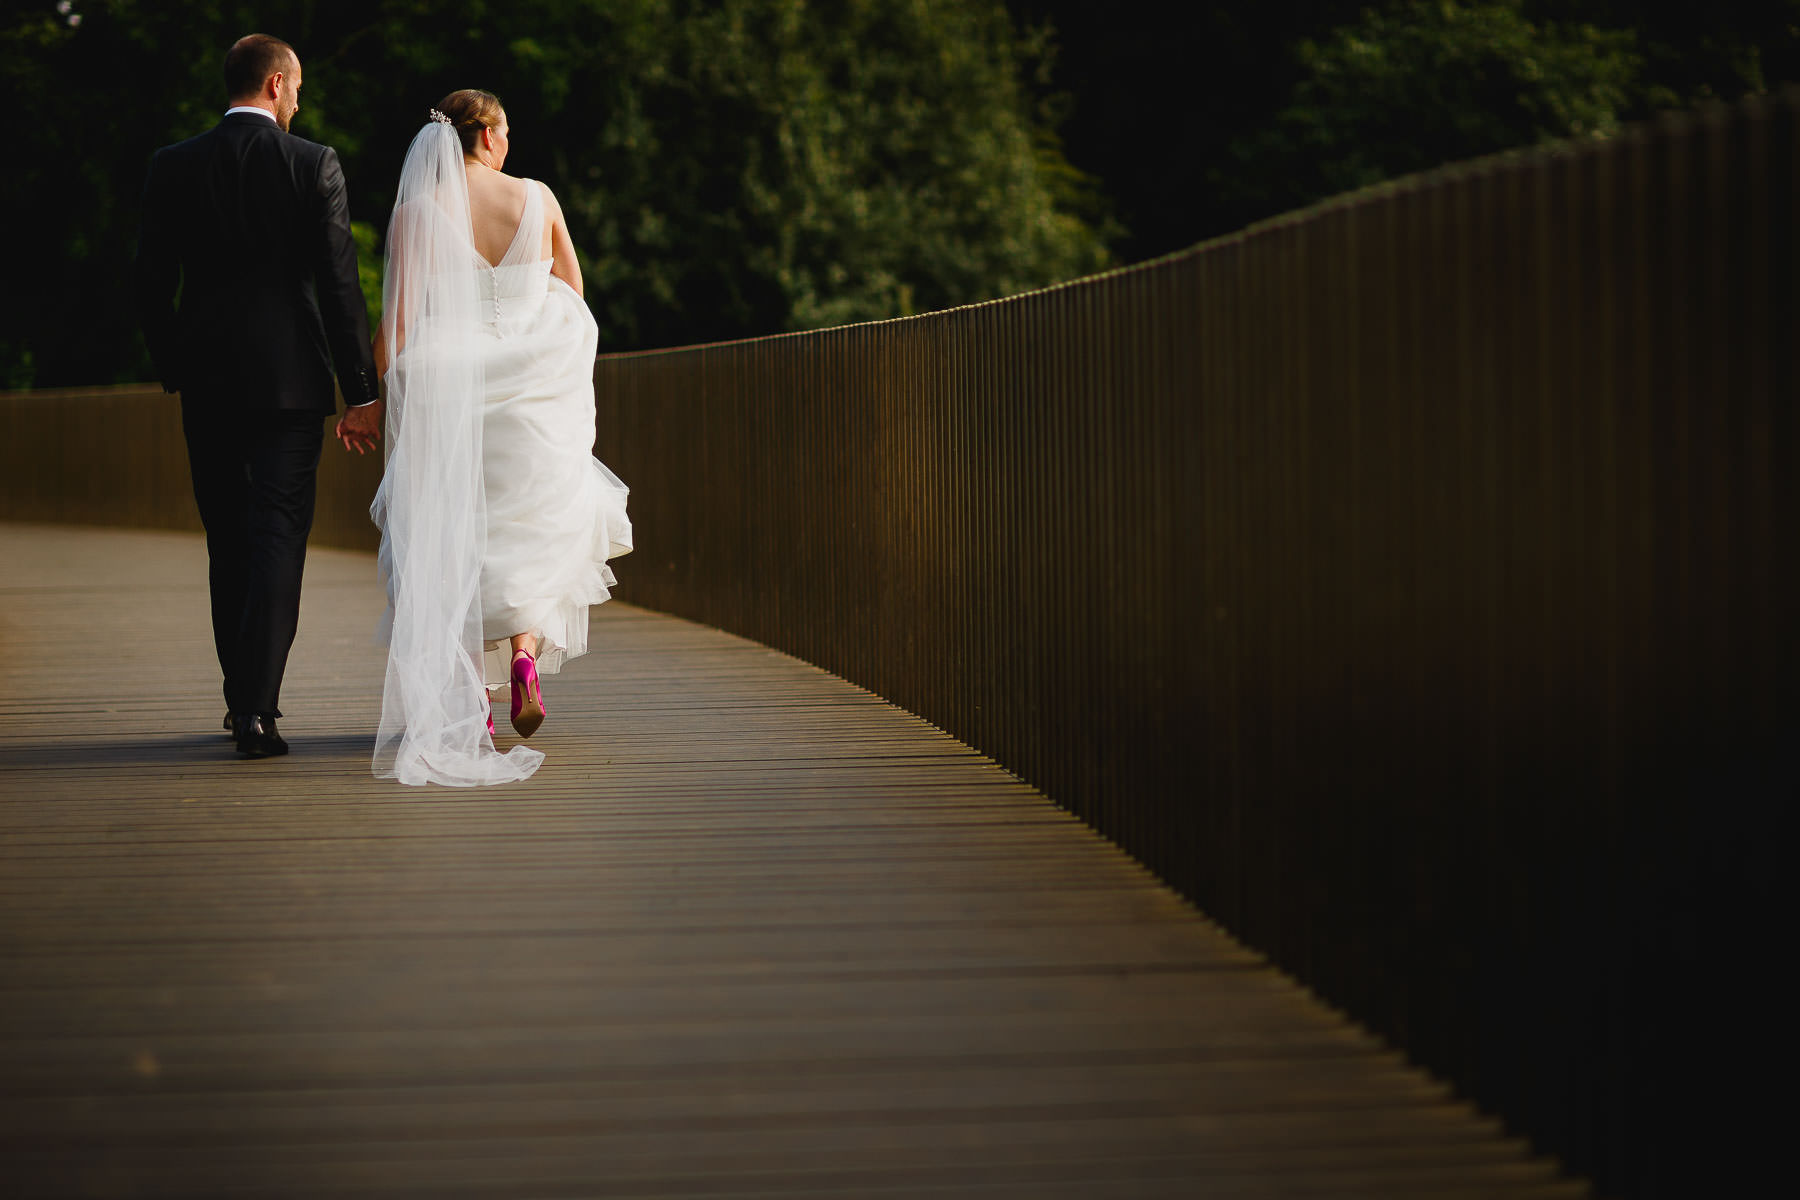 kew gardens wedding photography astra duncan48